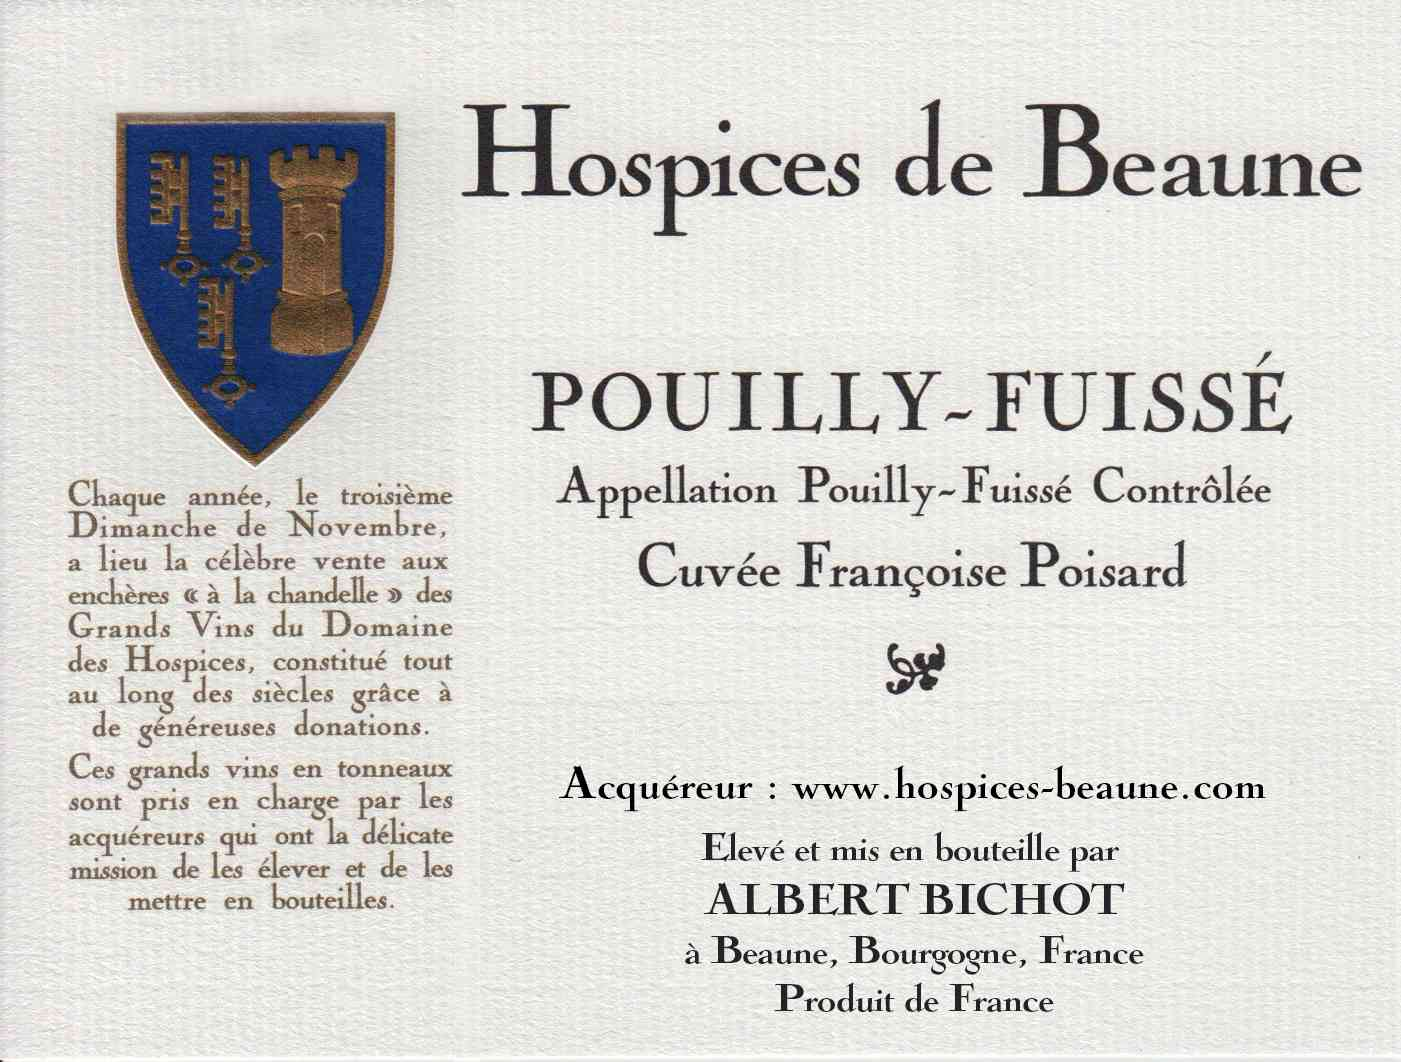 Encheres-auction-HospicesdeBeaune-AlbertBichot-PouillyFuisse-Cuvee-FrançoisePoisard